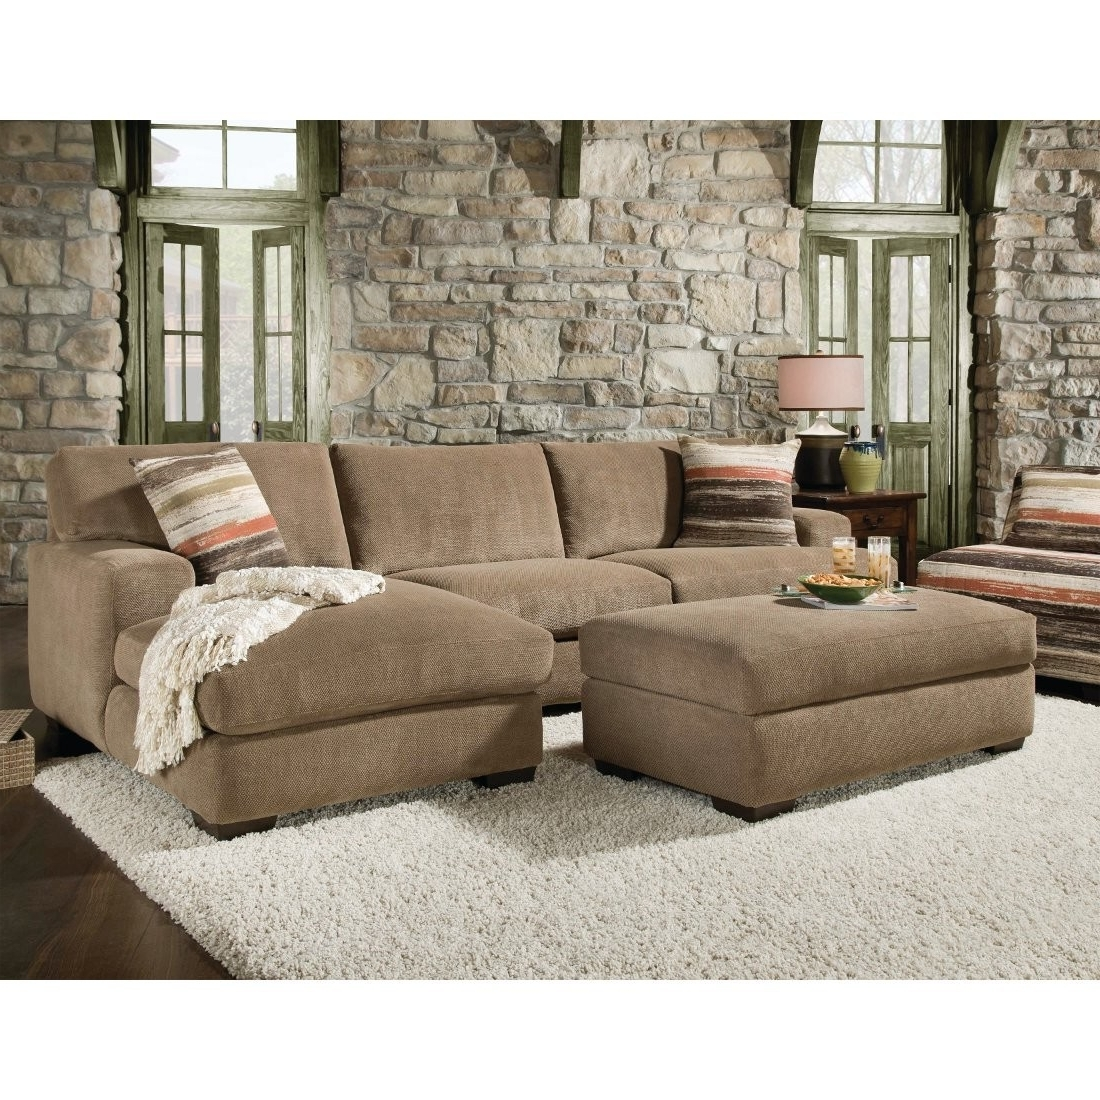 Beautiful Sectional Sofa With Chaise And Ottoman Pictures In 2018 Sectionals With Chaise And Ottoman (View 3 of 15)